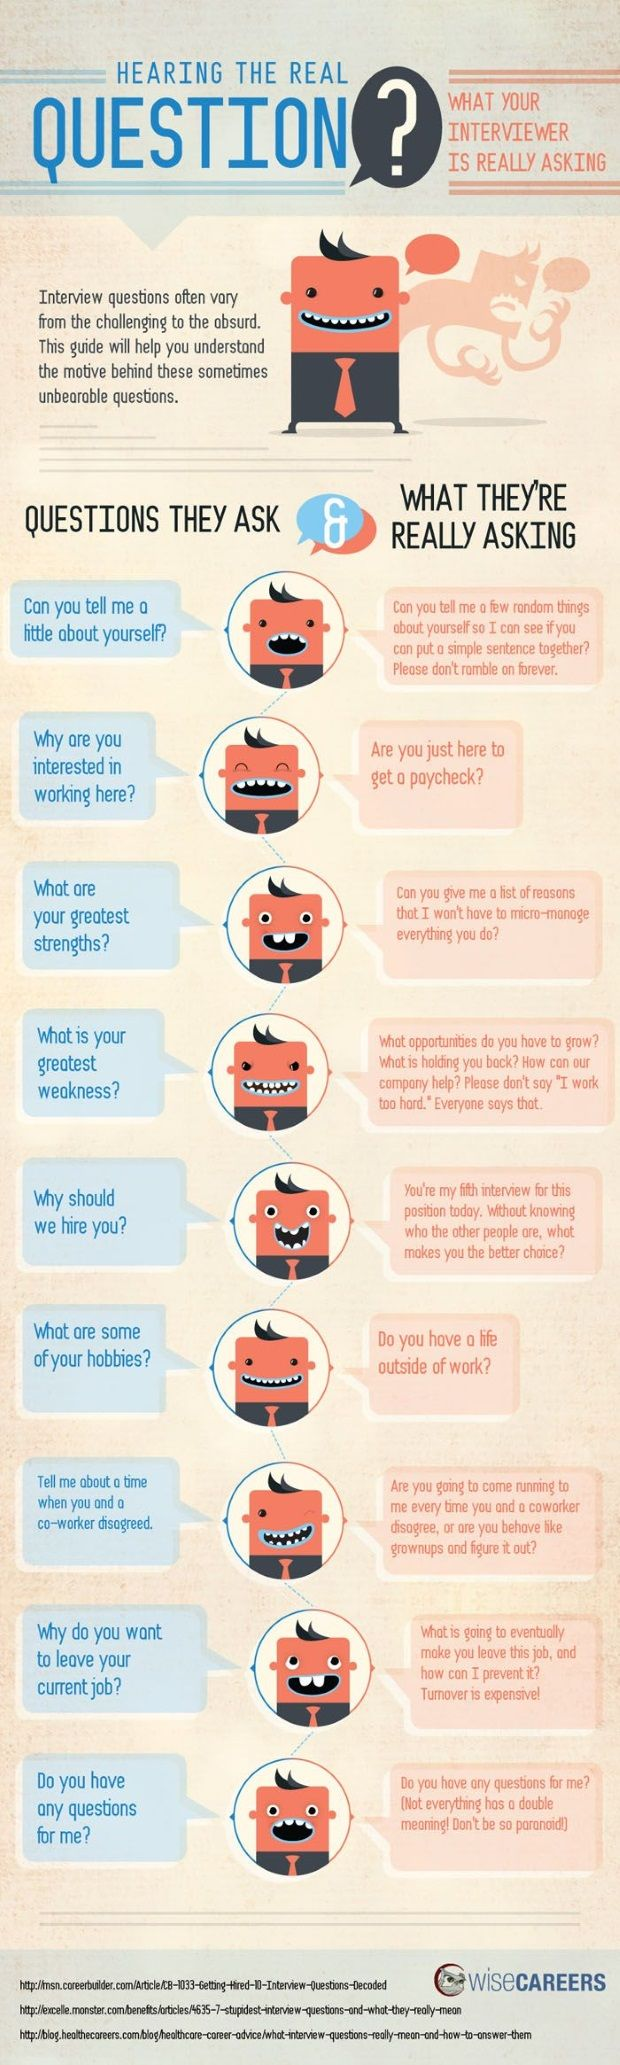 tough job interview question heres what they are really asking infographic - Good Answers To Interview Questions Possible Interview Questions